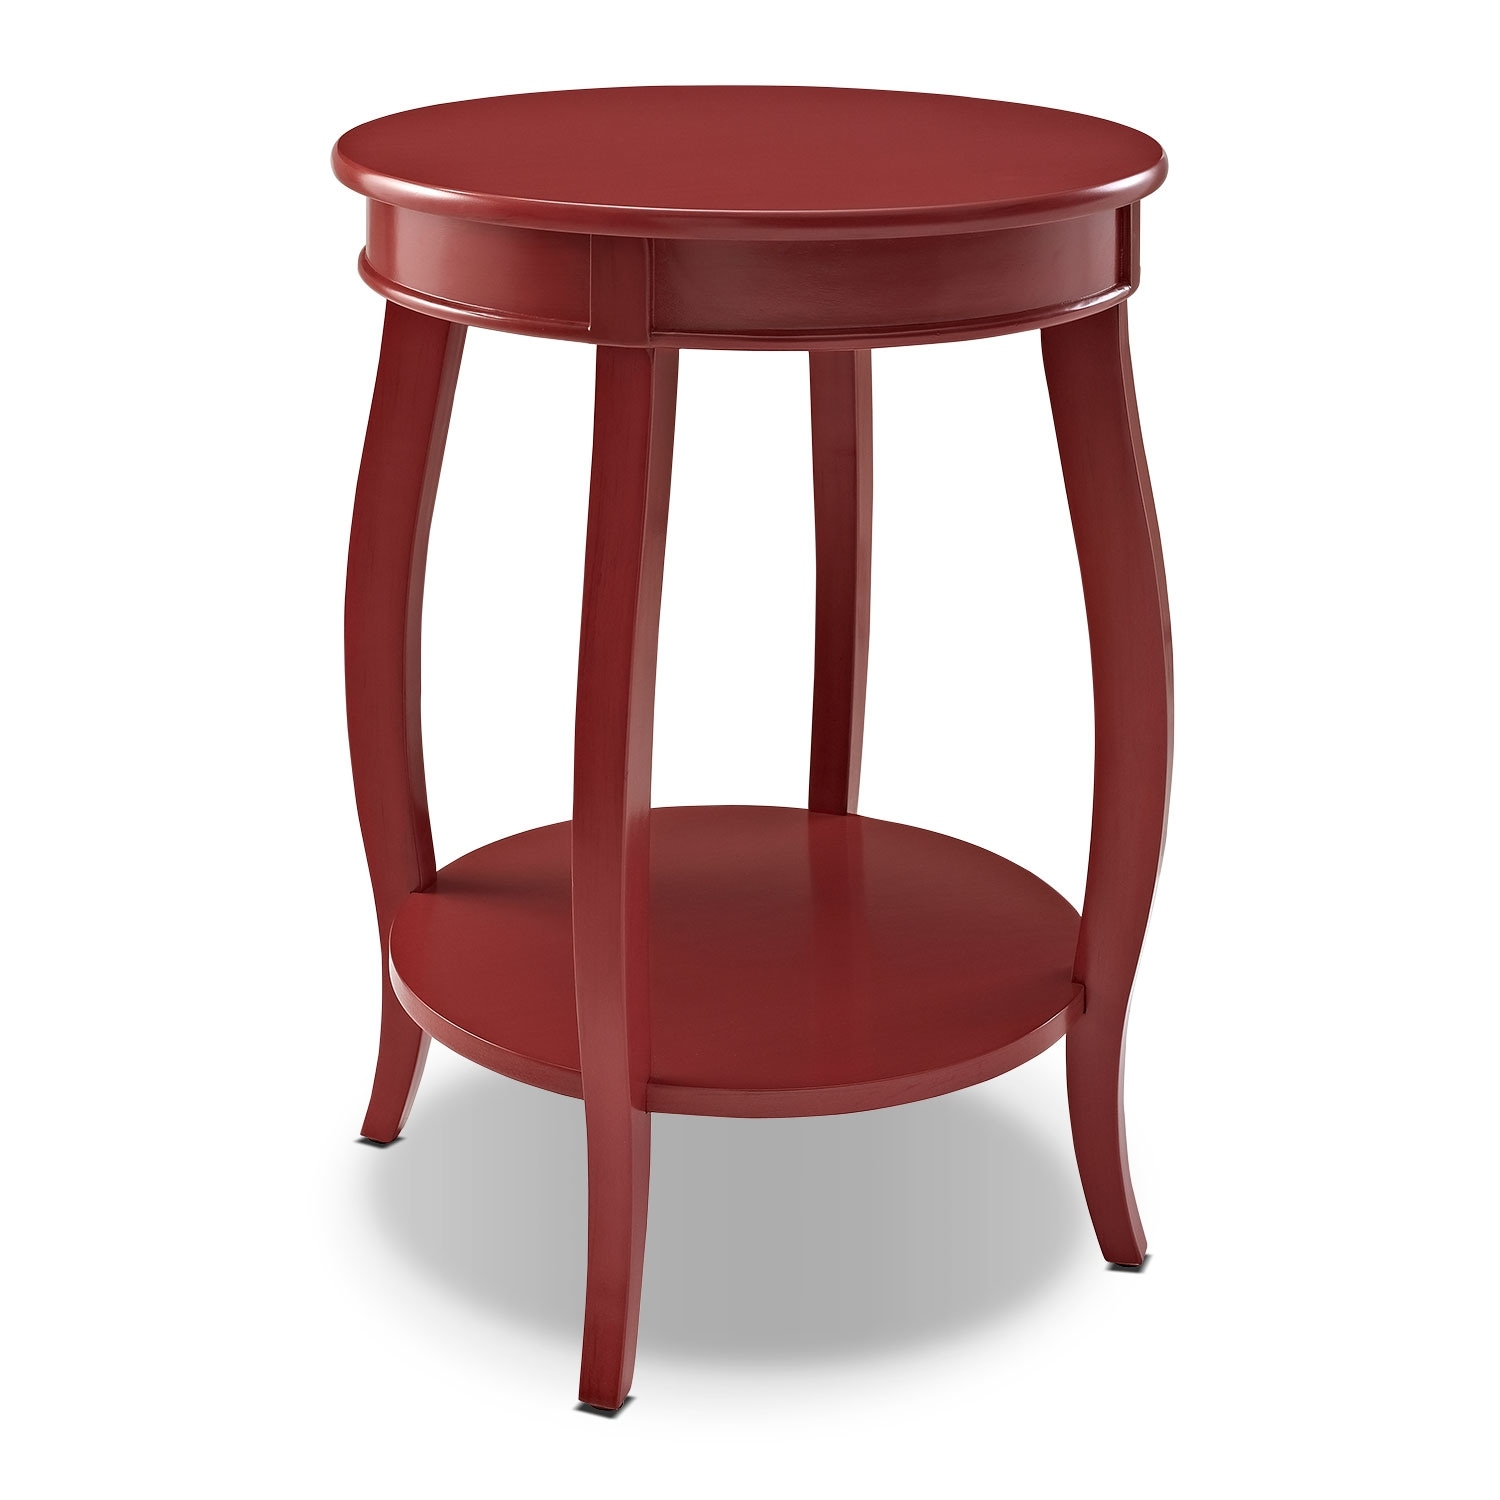 sydney accent table red value city furniture and mattresses tables under couch side outdoor patio dining sets small console with drawers battery operated lamps lighting clear